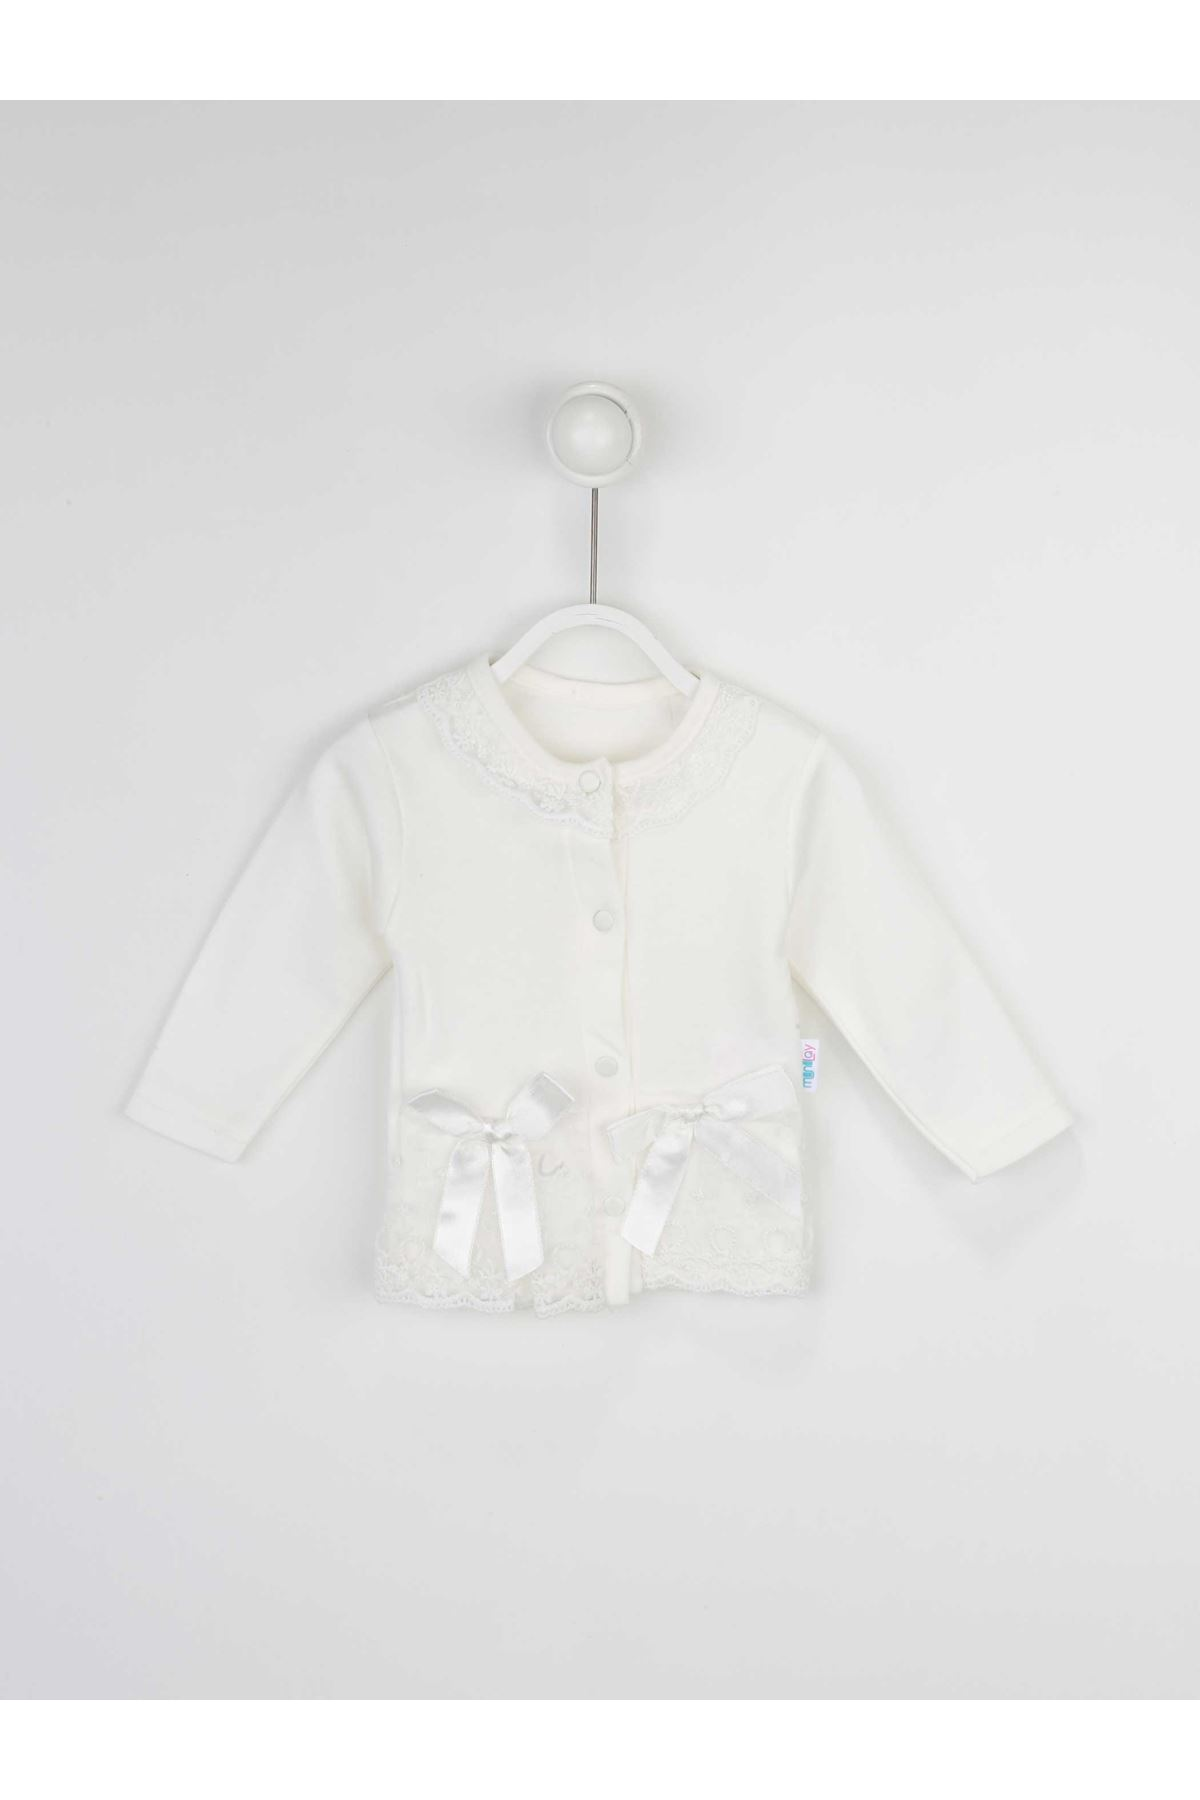 White Baby Girl 2 Piece Set Tracksuit Bottom Babies Girls Wear Top Outfit Cotton Casual Casual Outfit Models